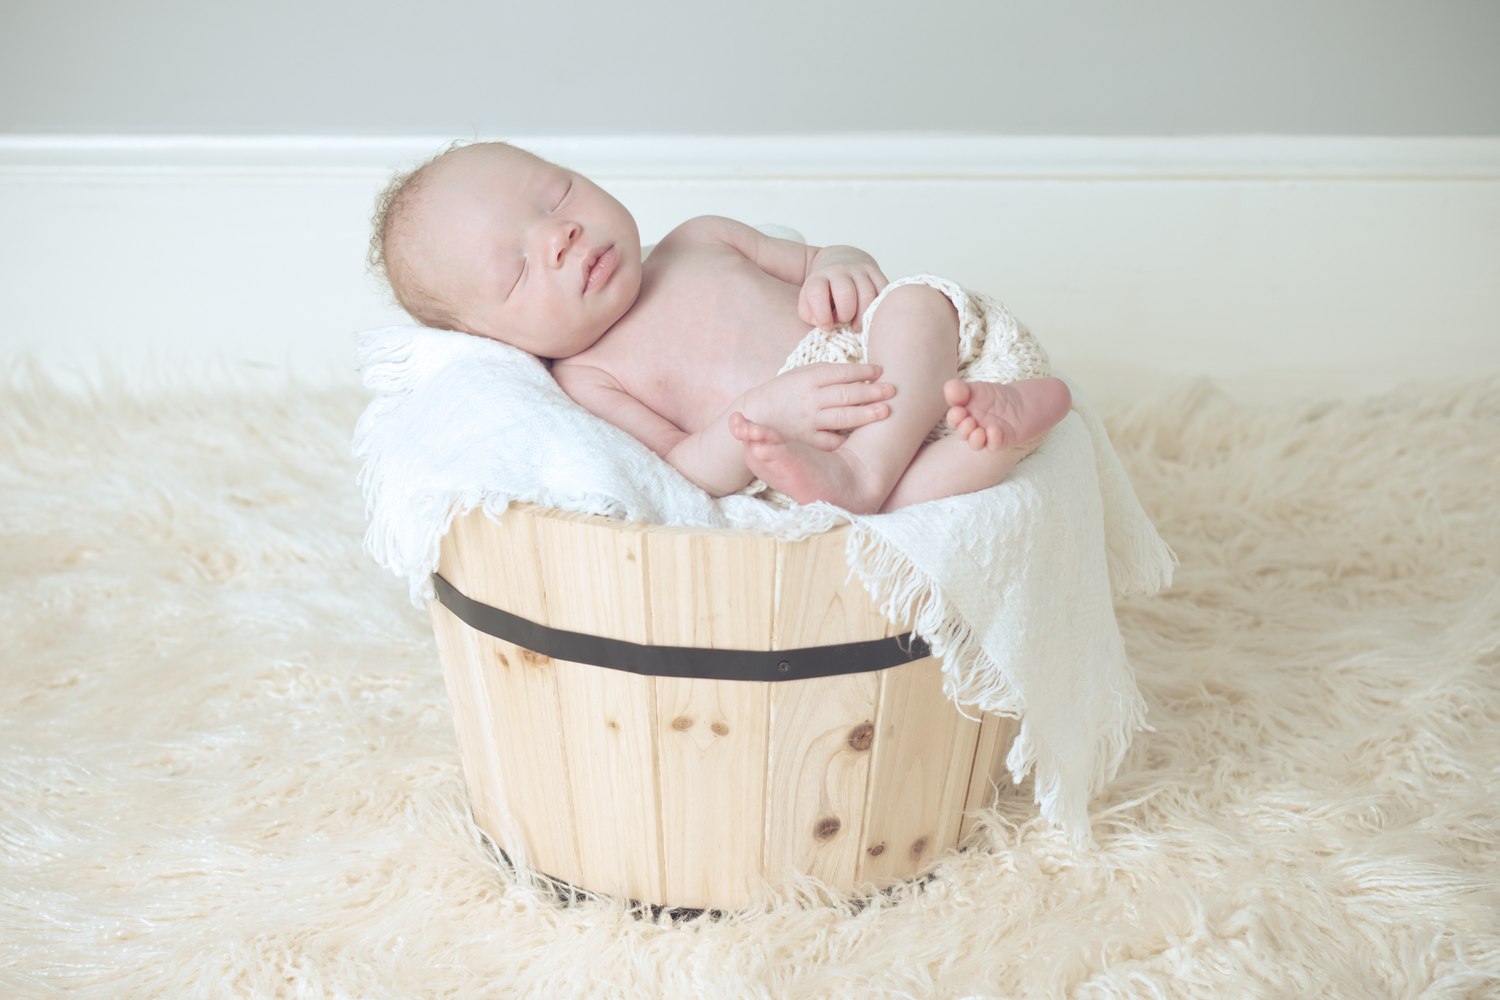 baby in a bucket